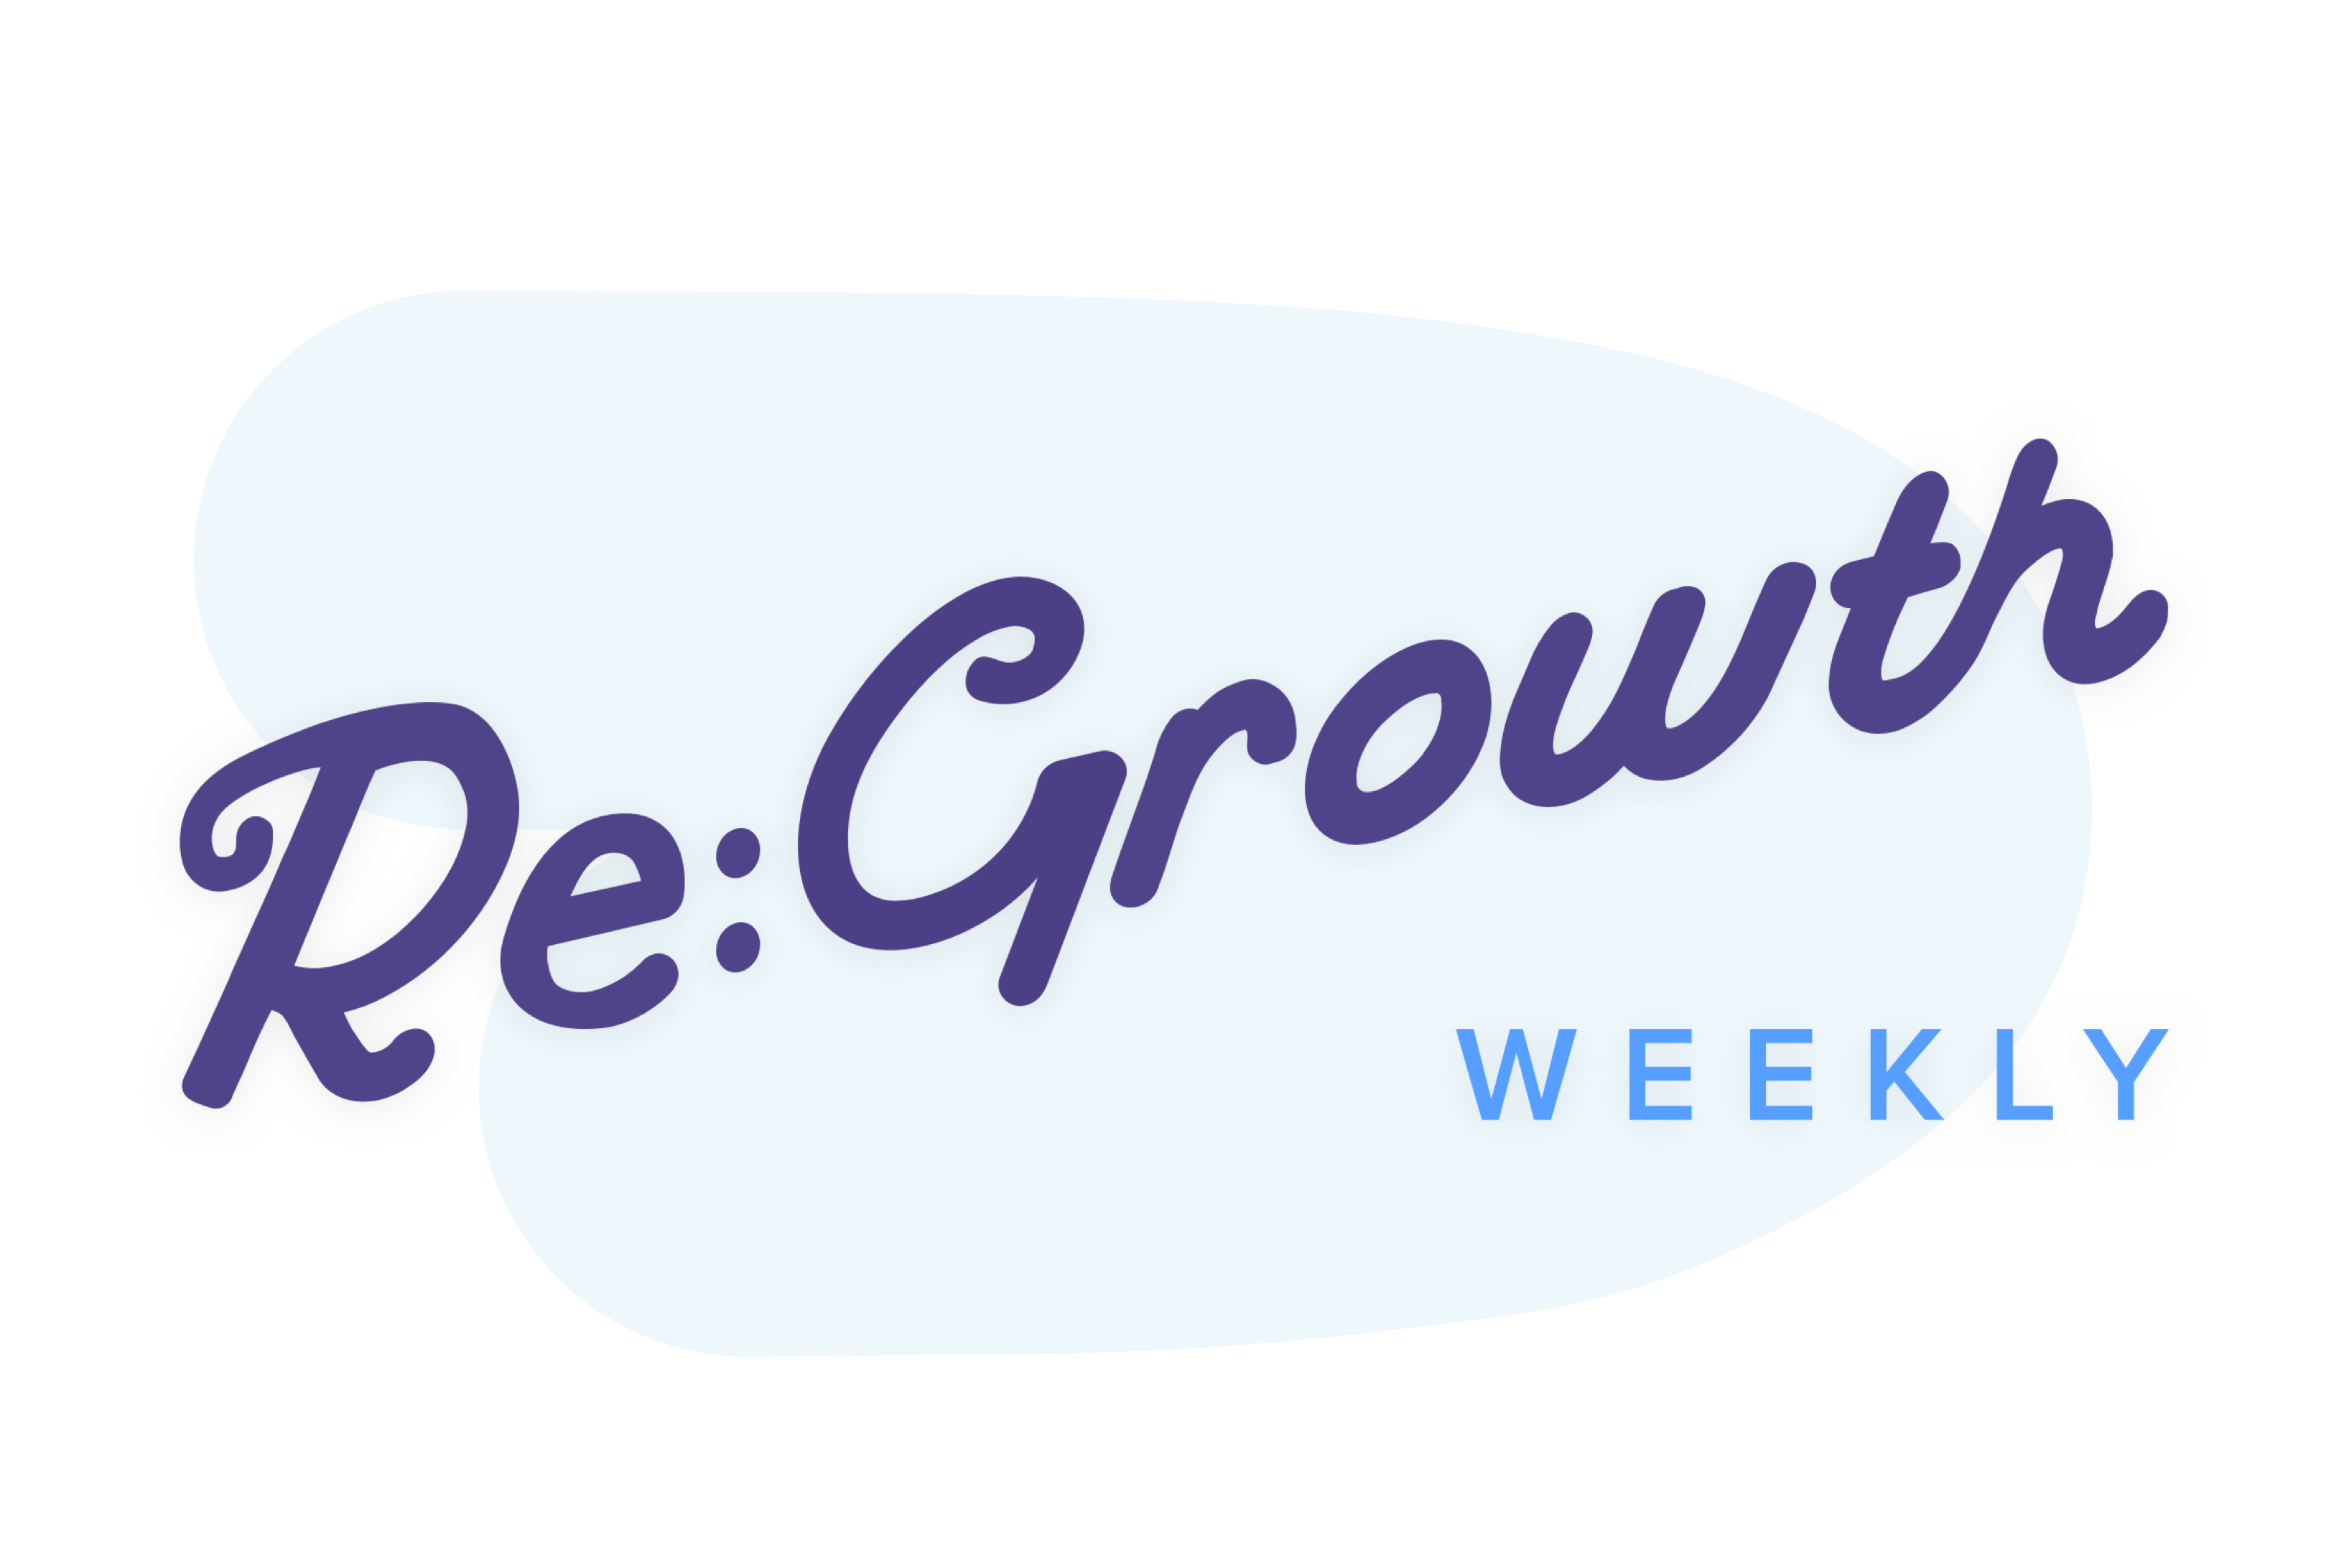 regrowth-weekly-logo-2